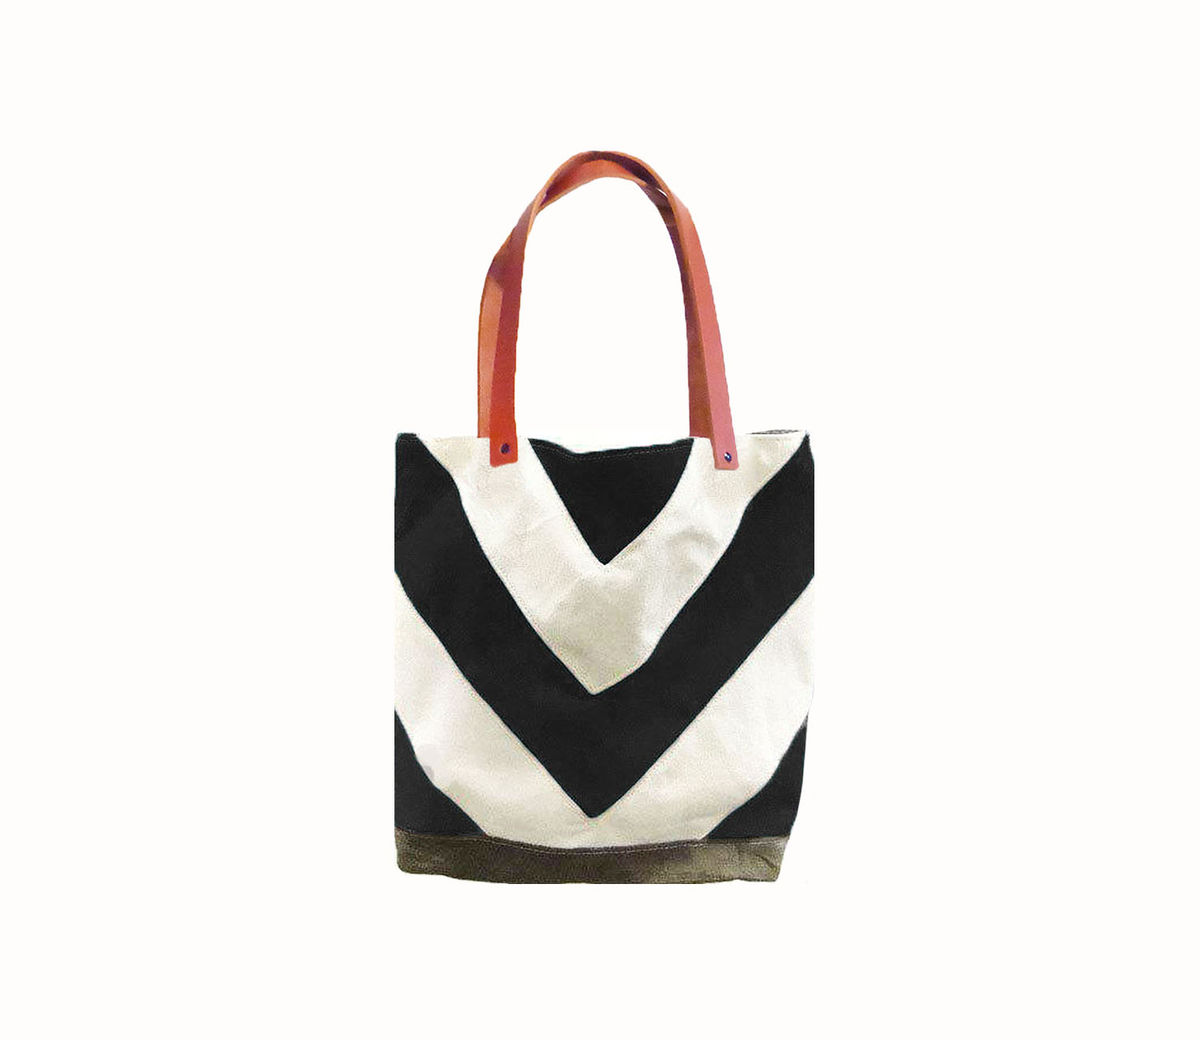 Chevron Tote City Market w/ Leather Straps in Black - product images  of